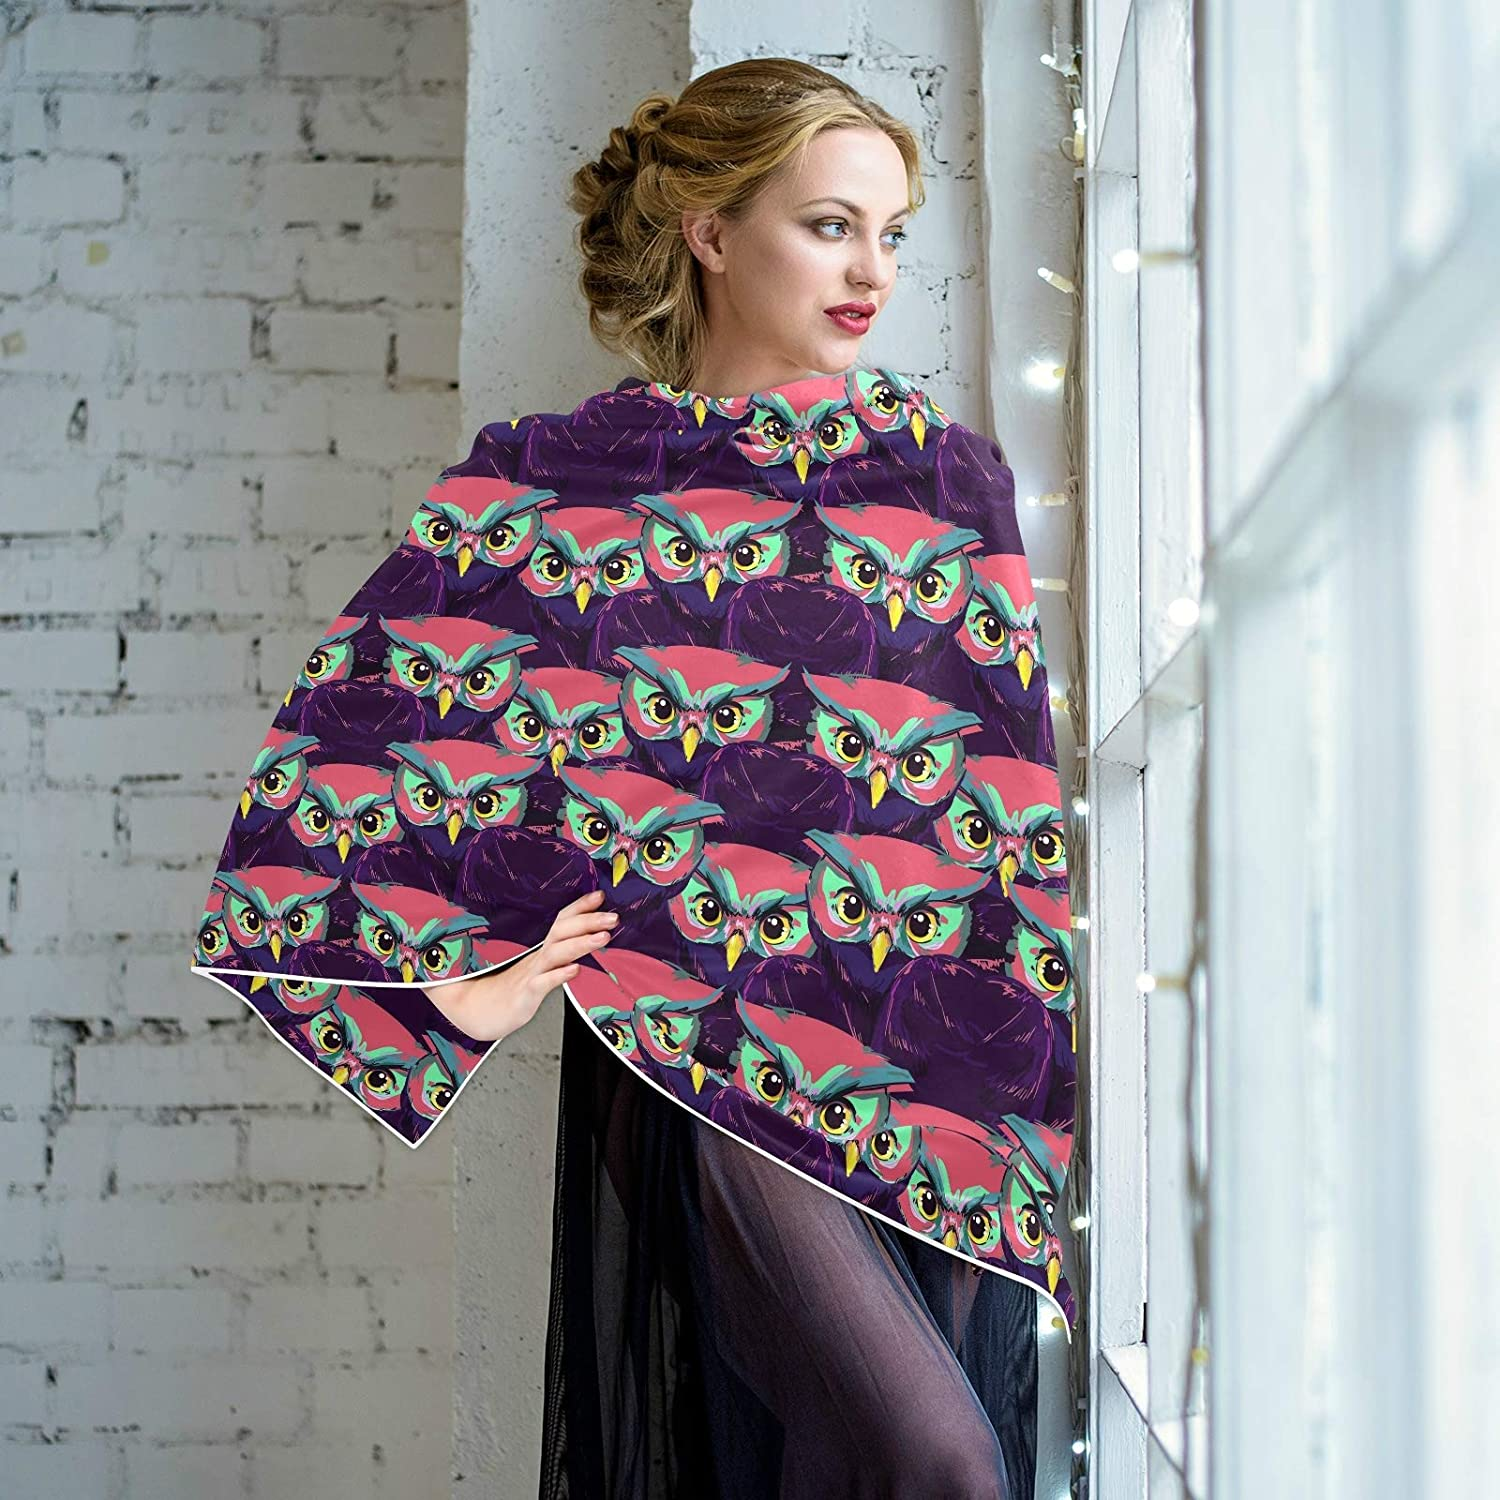 Scarf for Women and Men Owl Blanket Shawl Scarf wraps Warm soft Winter Oversized Scarves Lightweight